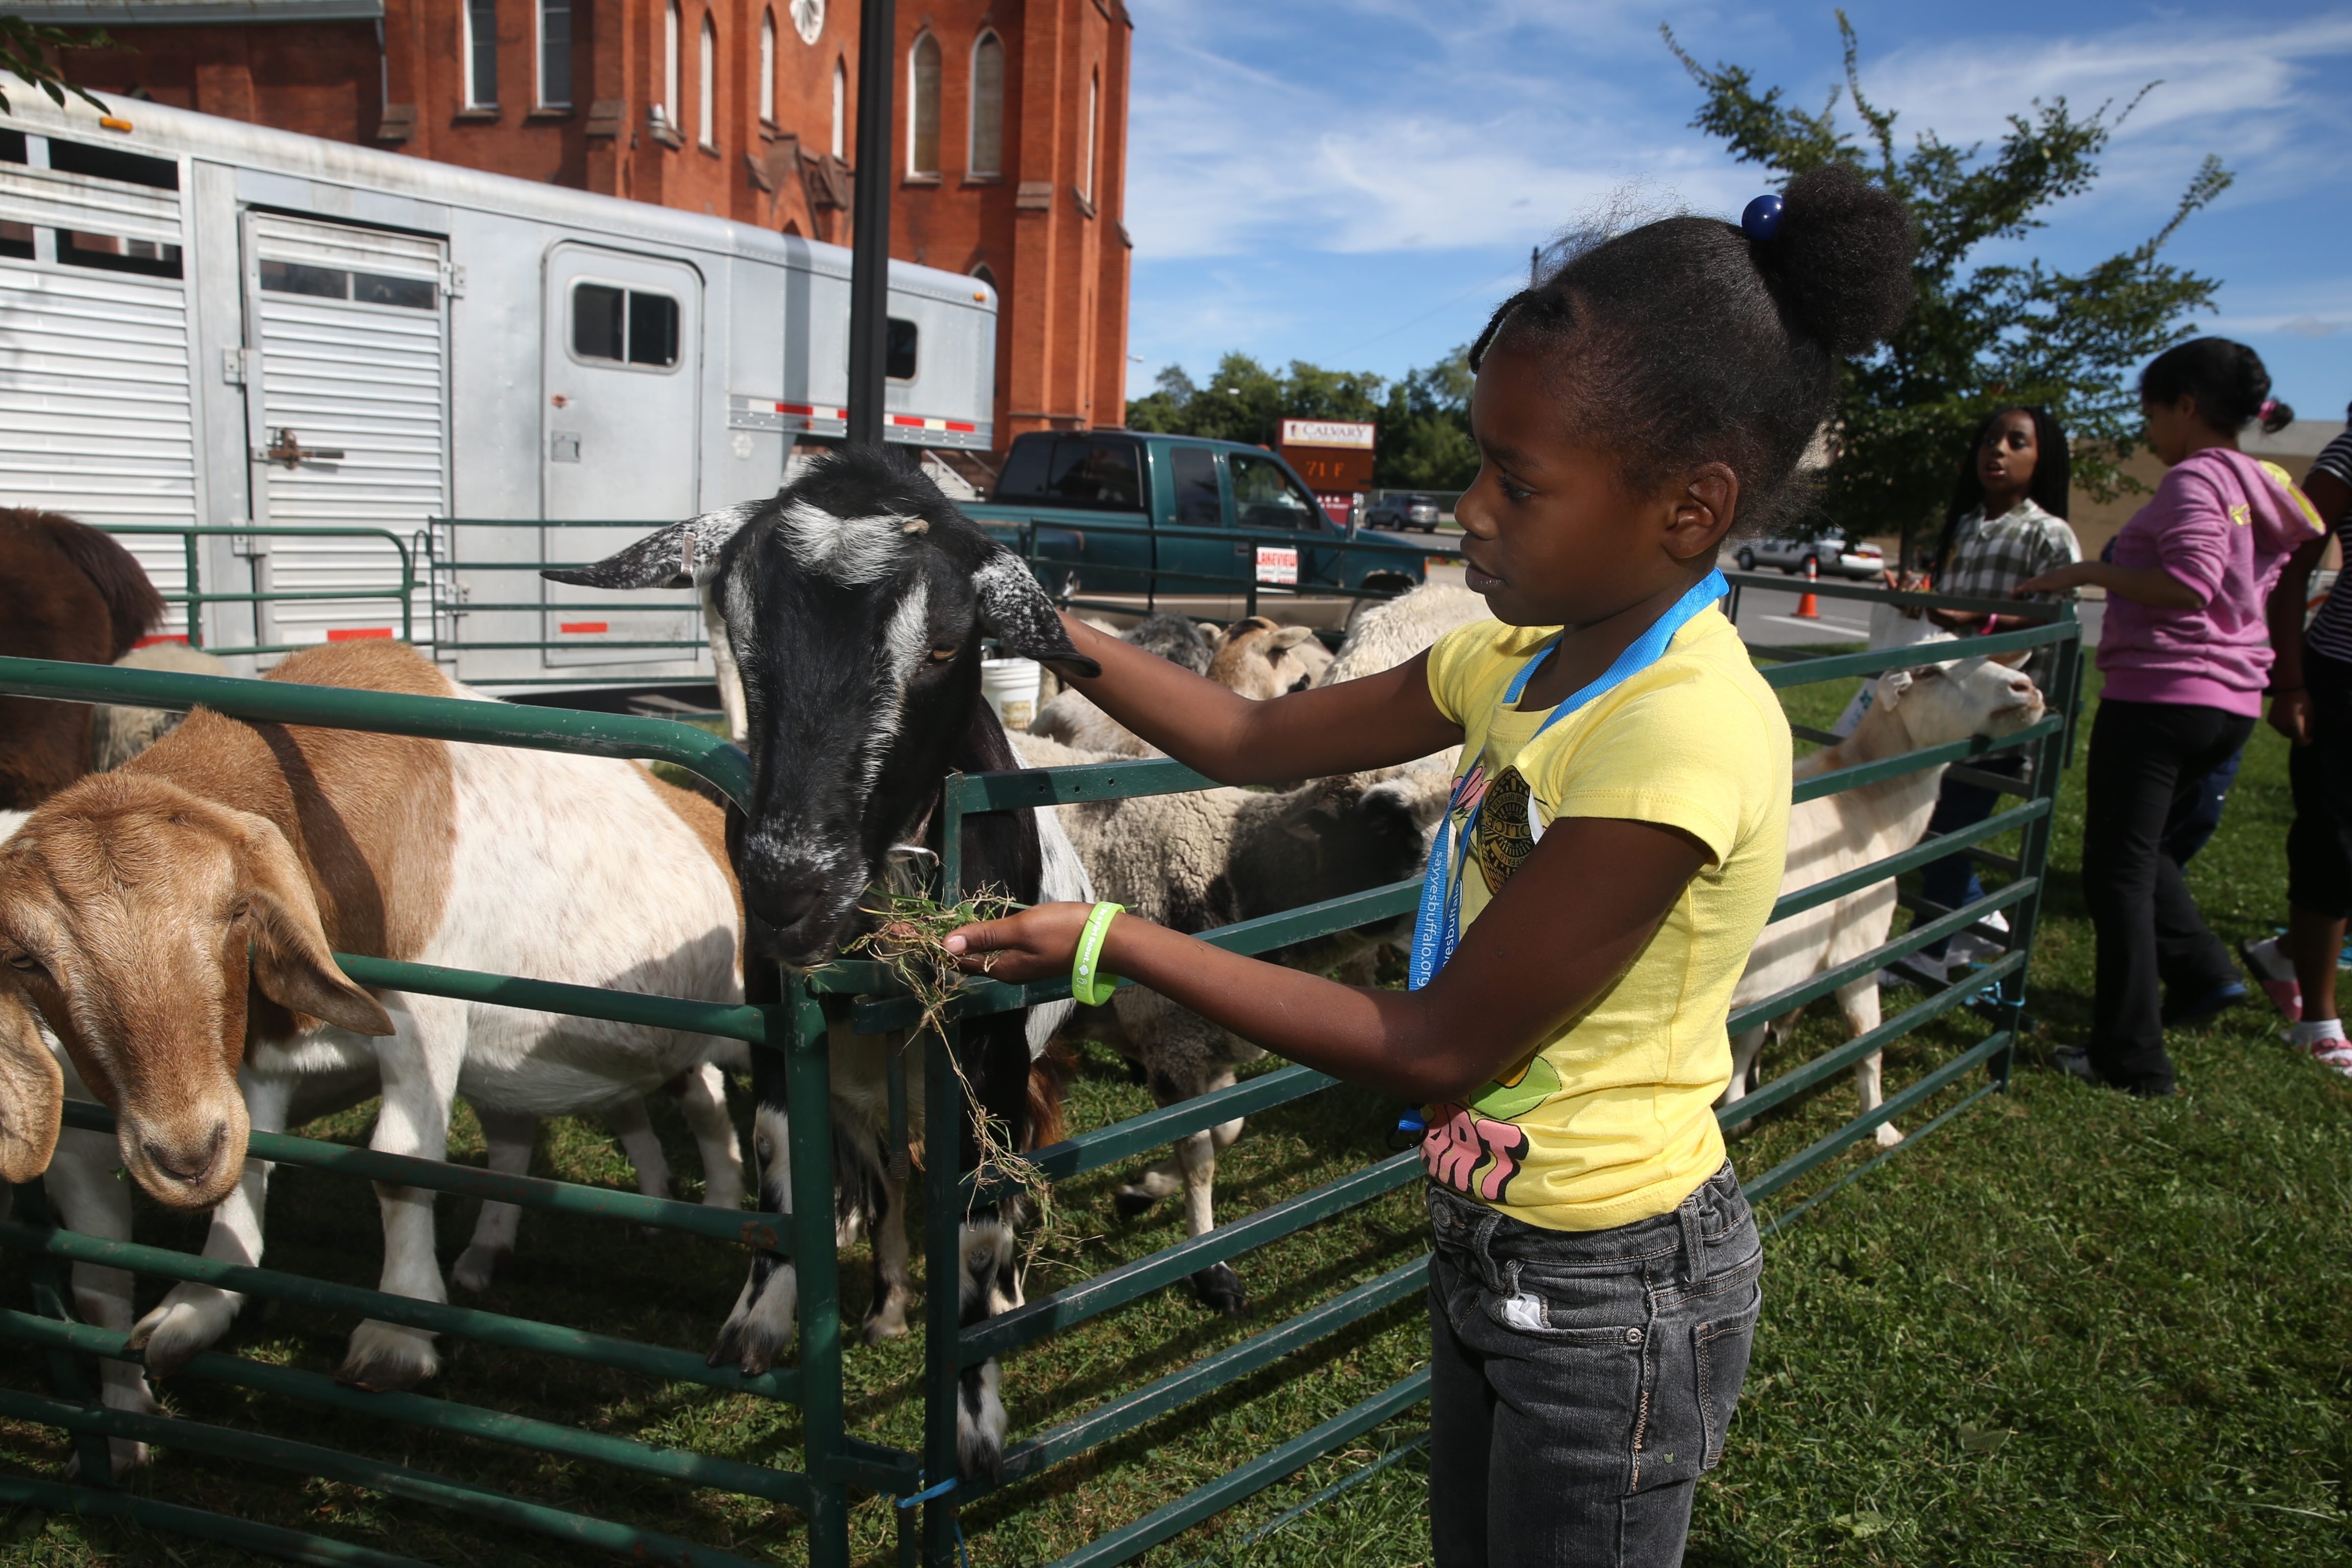 Nakyra Hilton, 7, feeds a goat at an animal pen as neighborhood comes together for Community Outreach Sunday at Calvary Baptist Church.